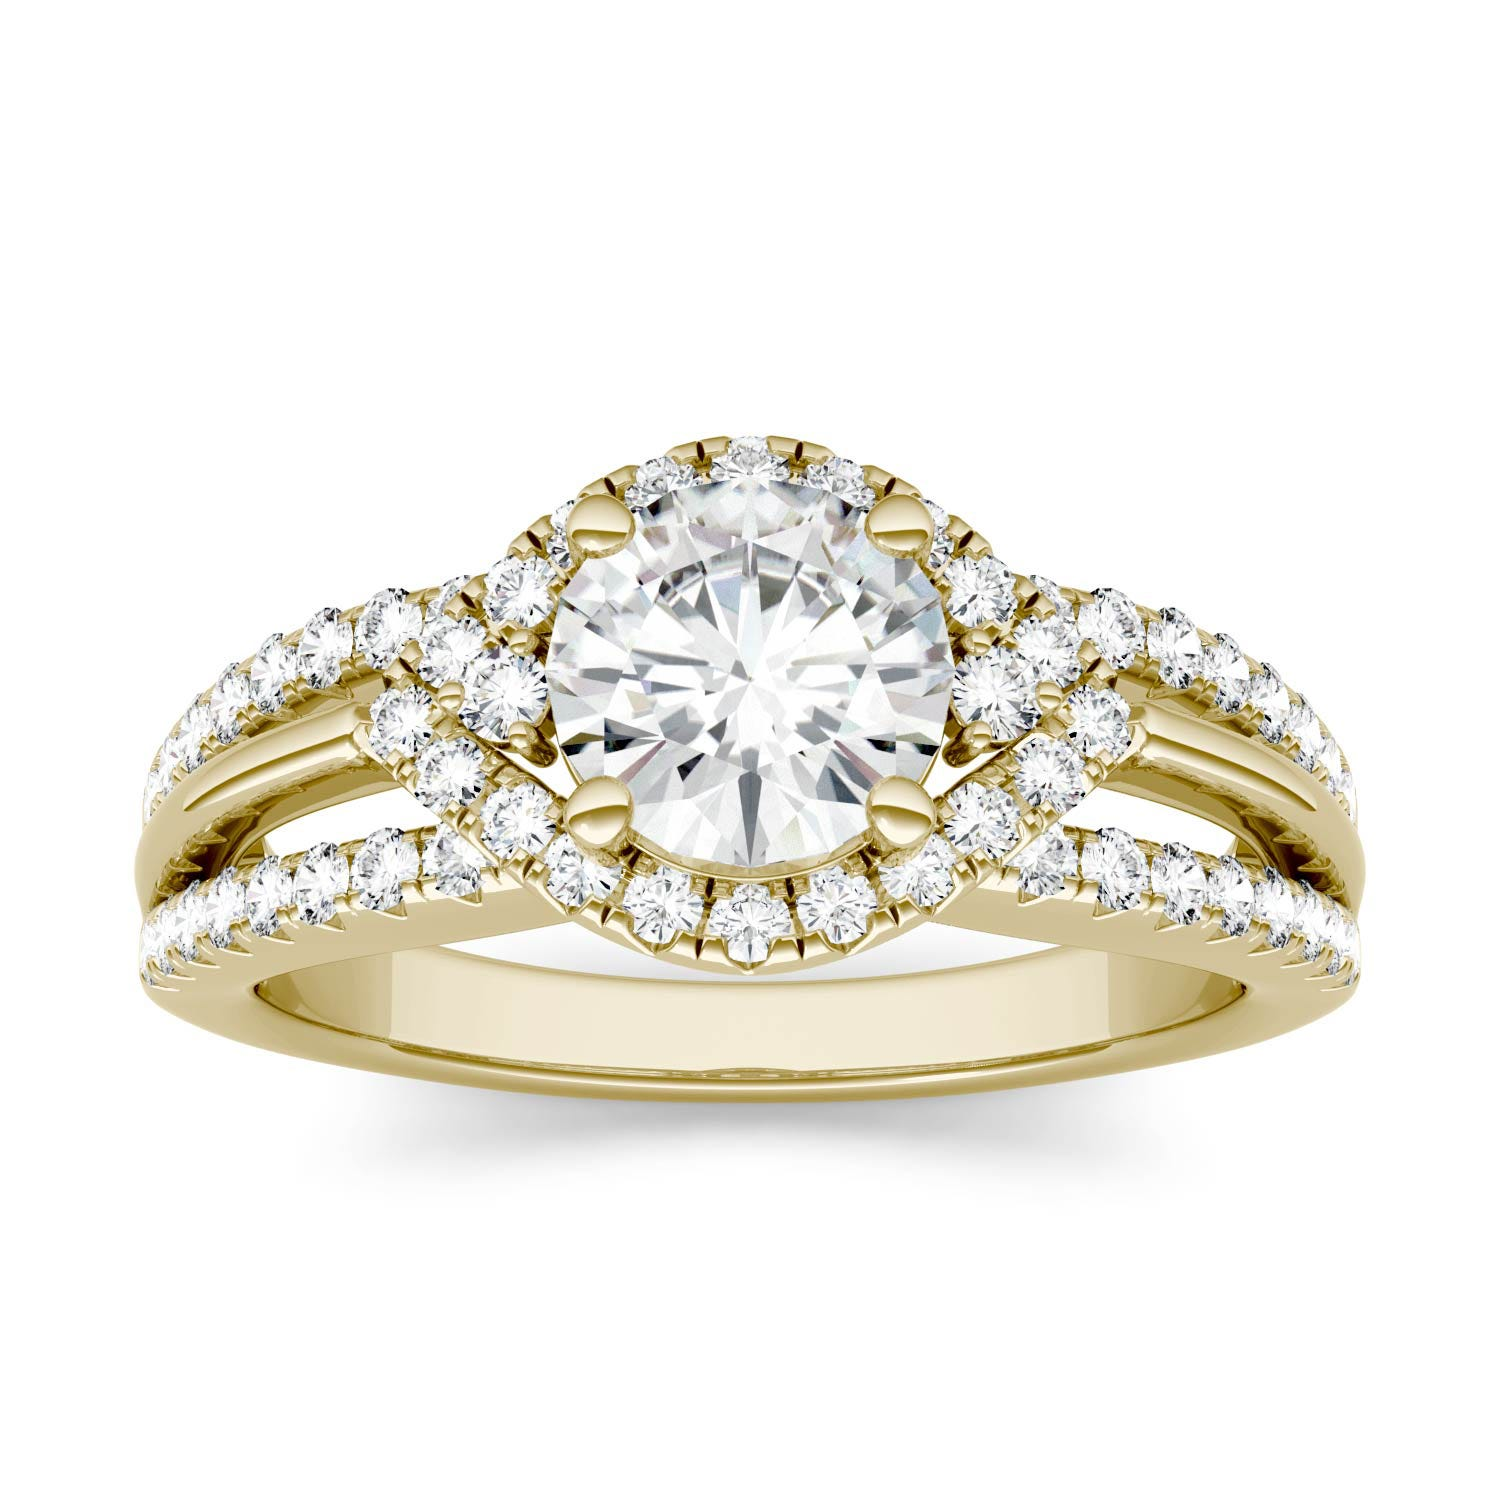 Round 1.11cttw DEW Moissanite Abstract Halo Engagement Ring in 14K Yellow Gold 606796